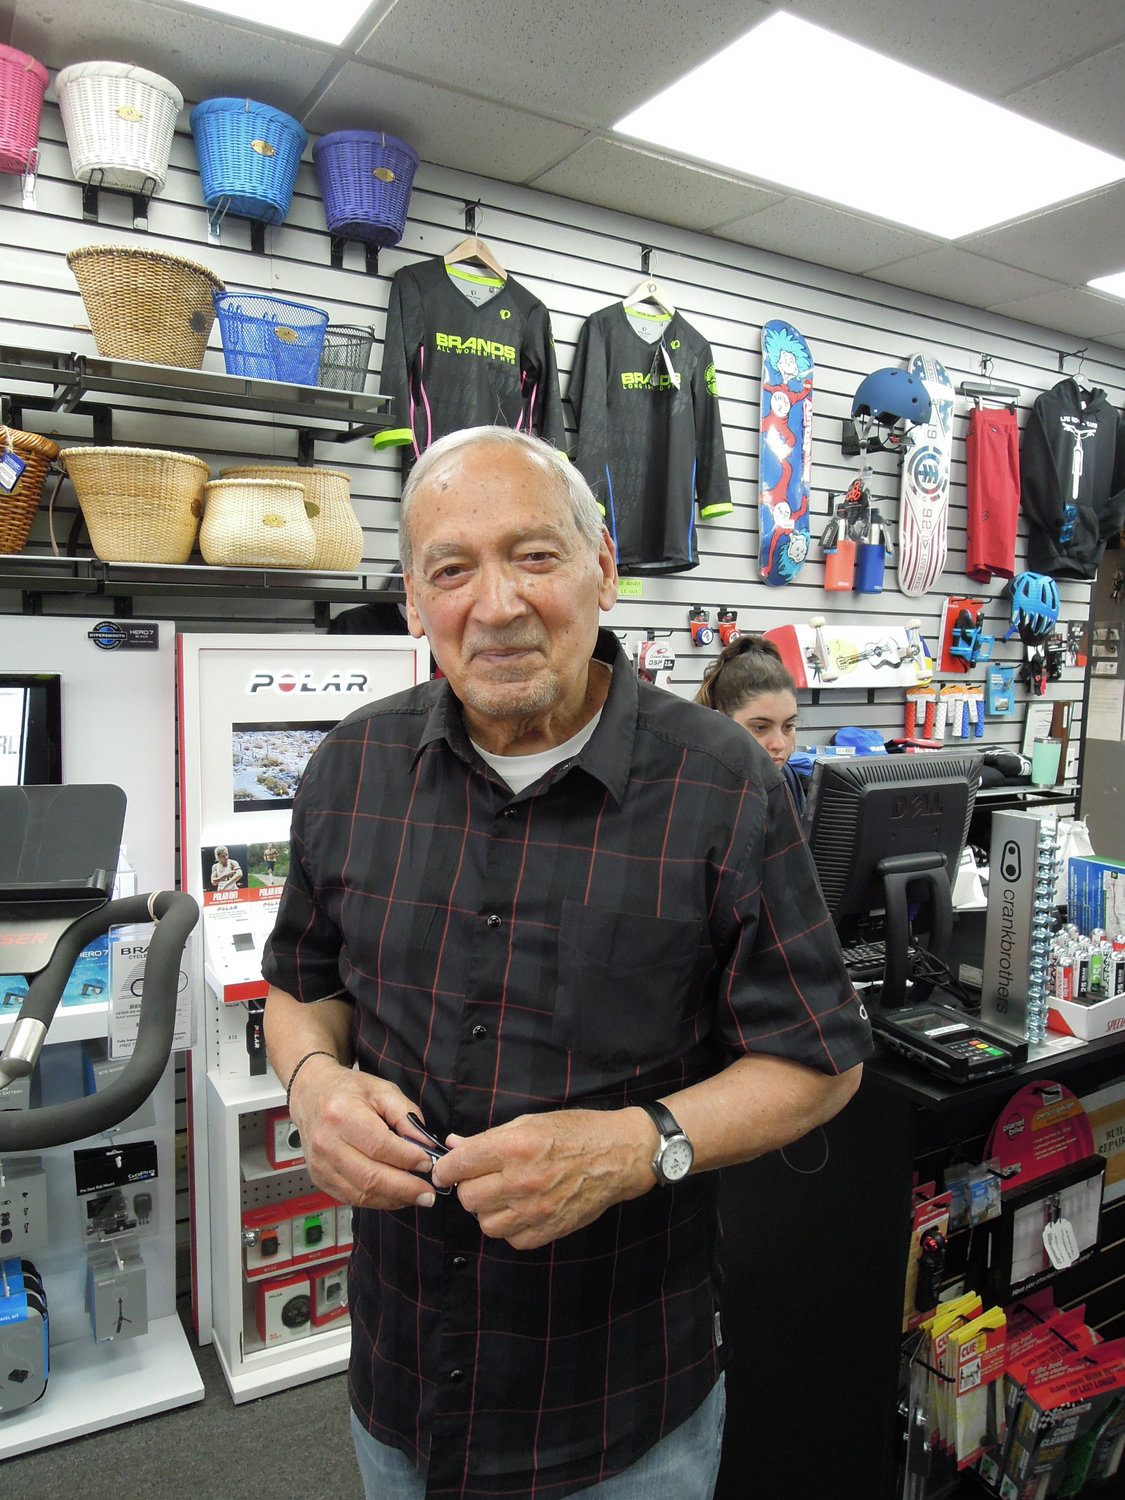 Brands manager John Cerami has been at the Wantagh cyclery for 50 years.